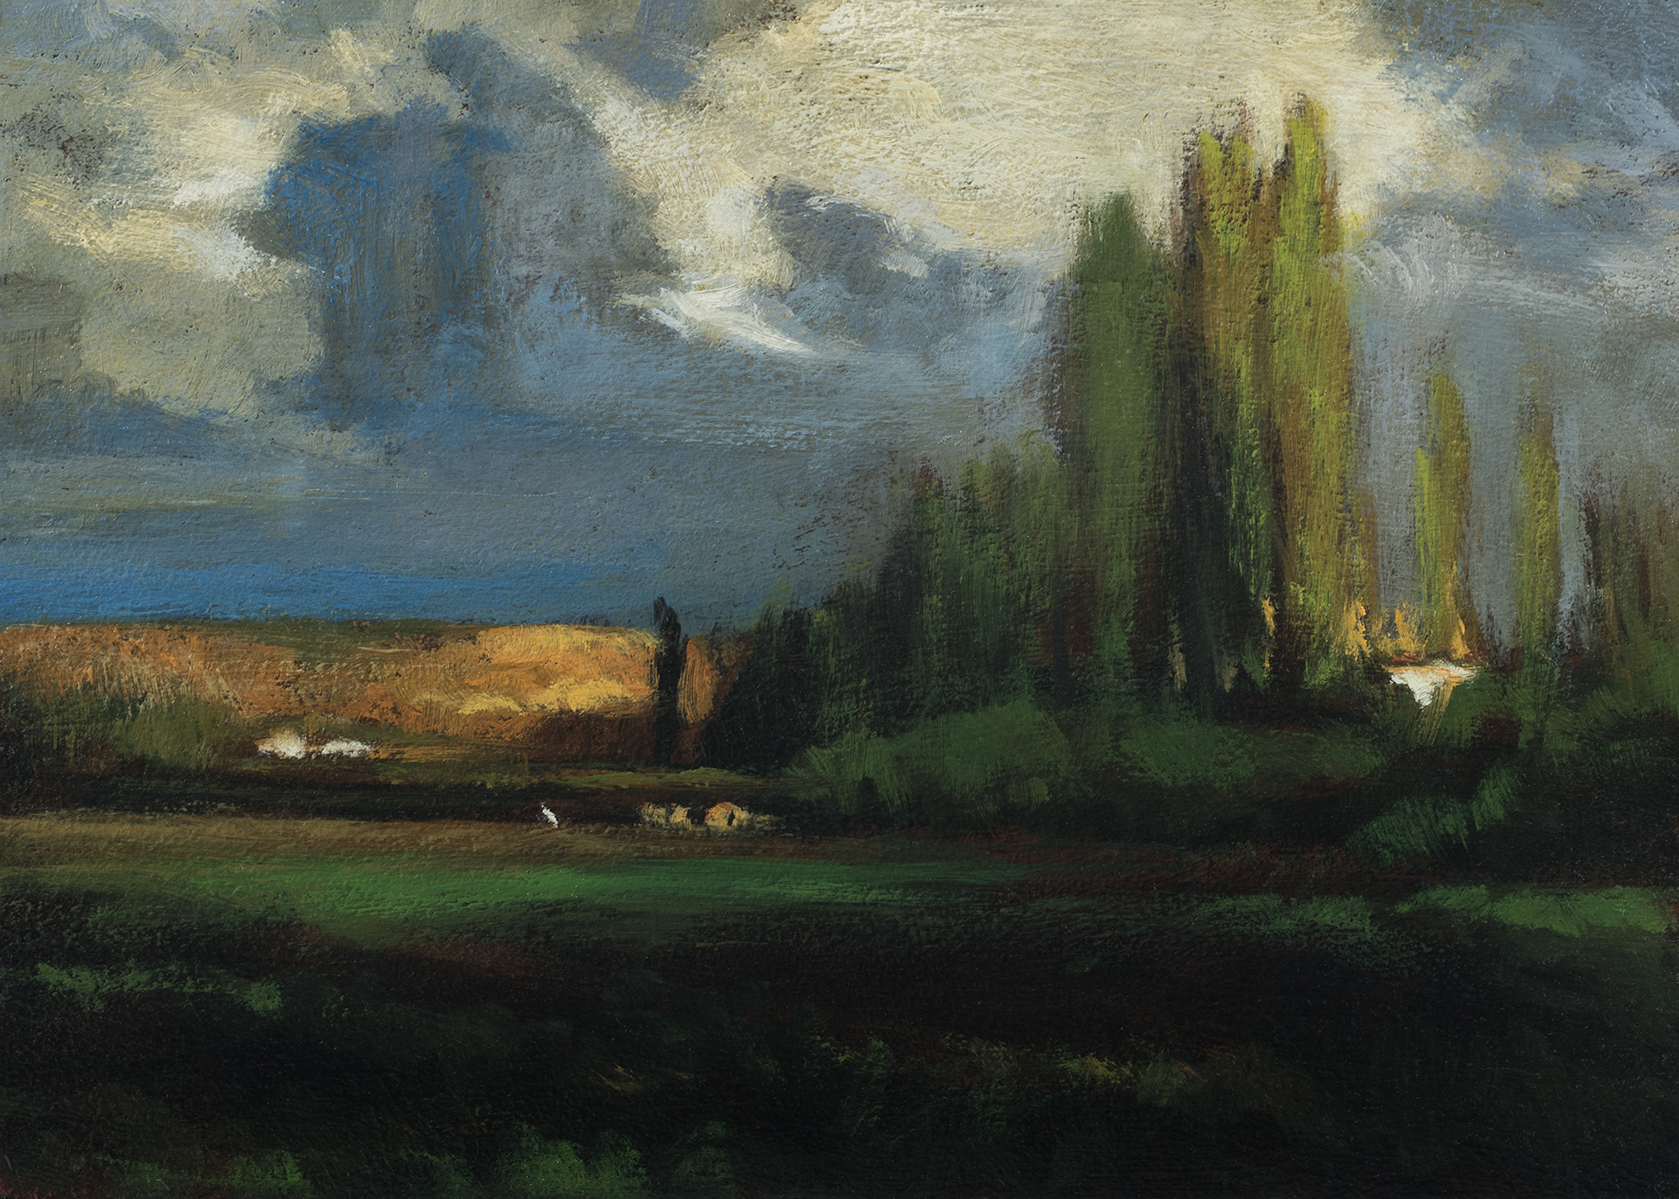 Study after: George Inness - Landscape by M Francis McCarthy - 5x7 Oil on Wood Panel